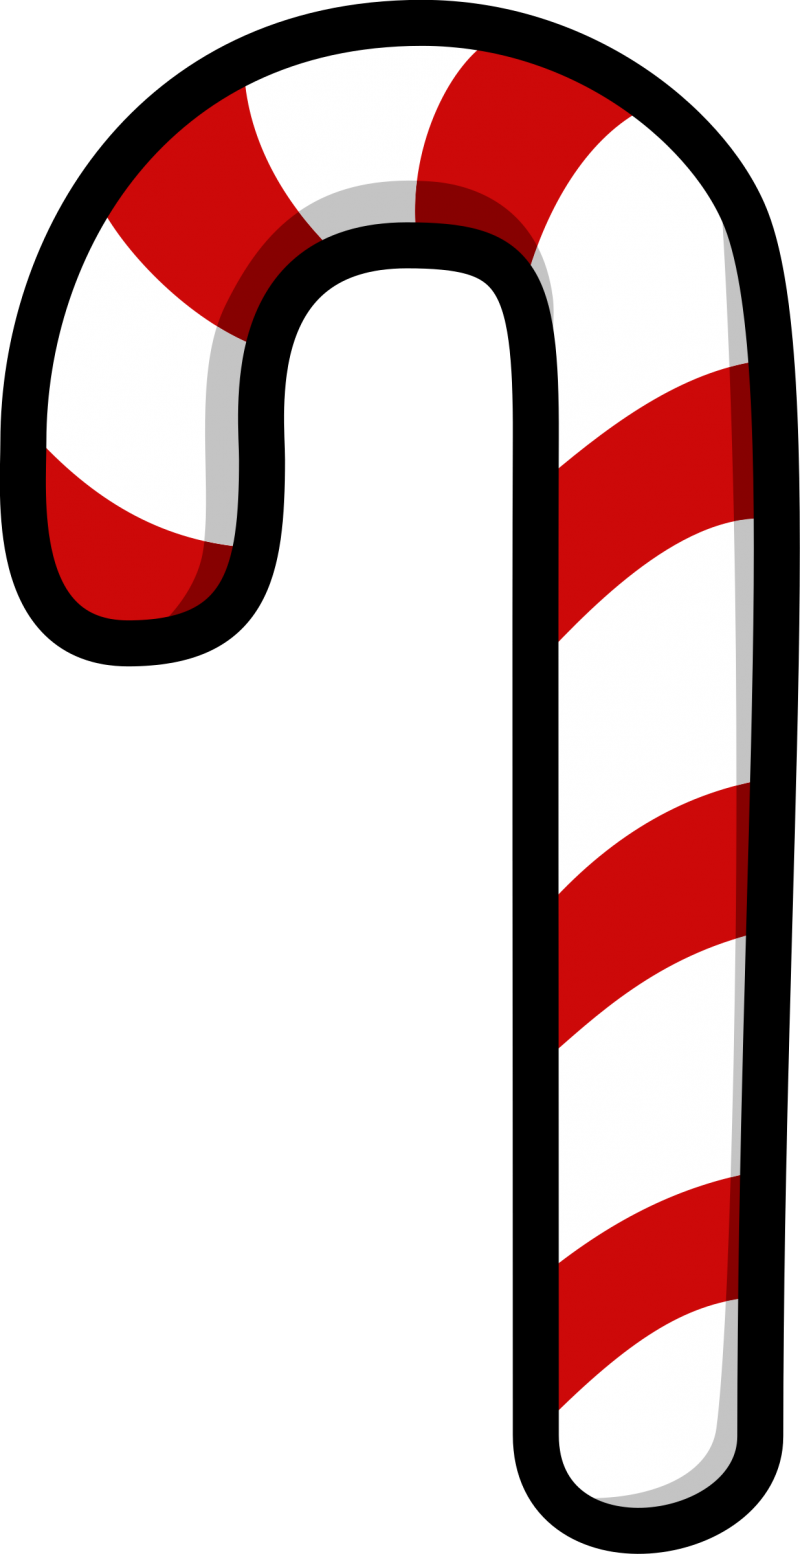 Striped Christmas Candy Cane PNG Image